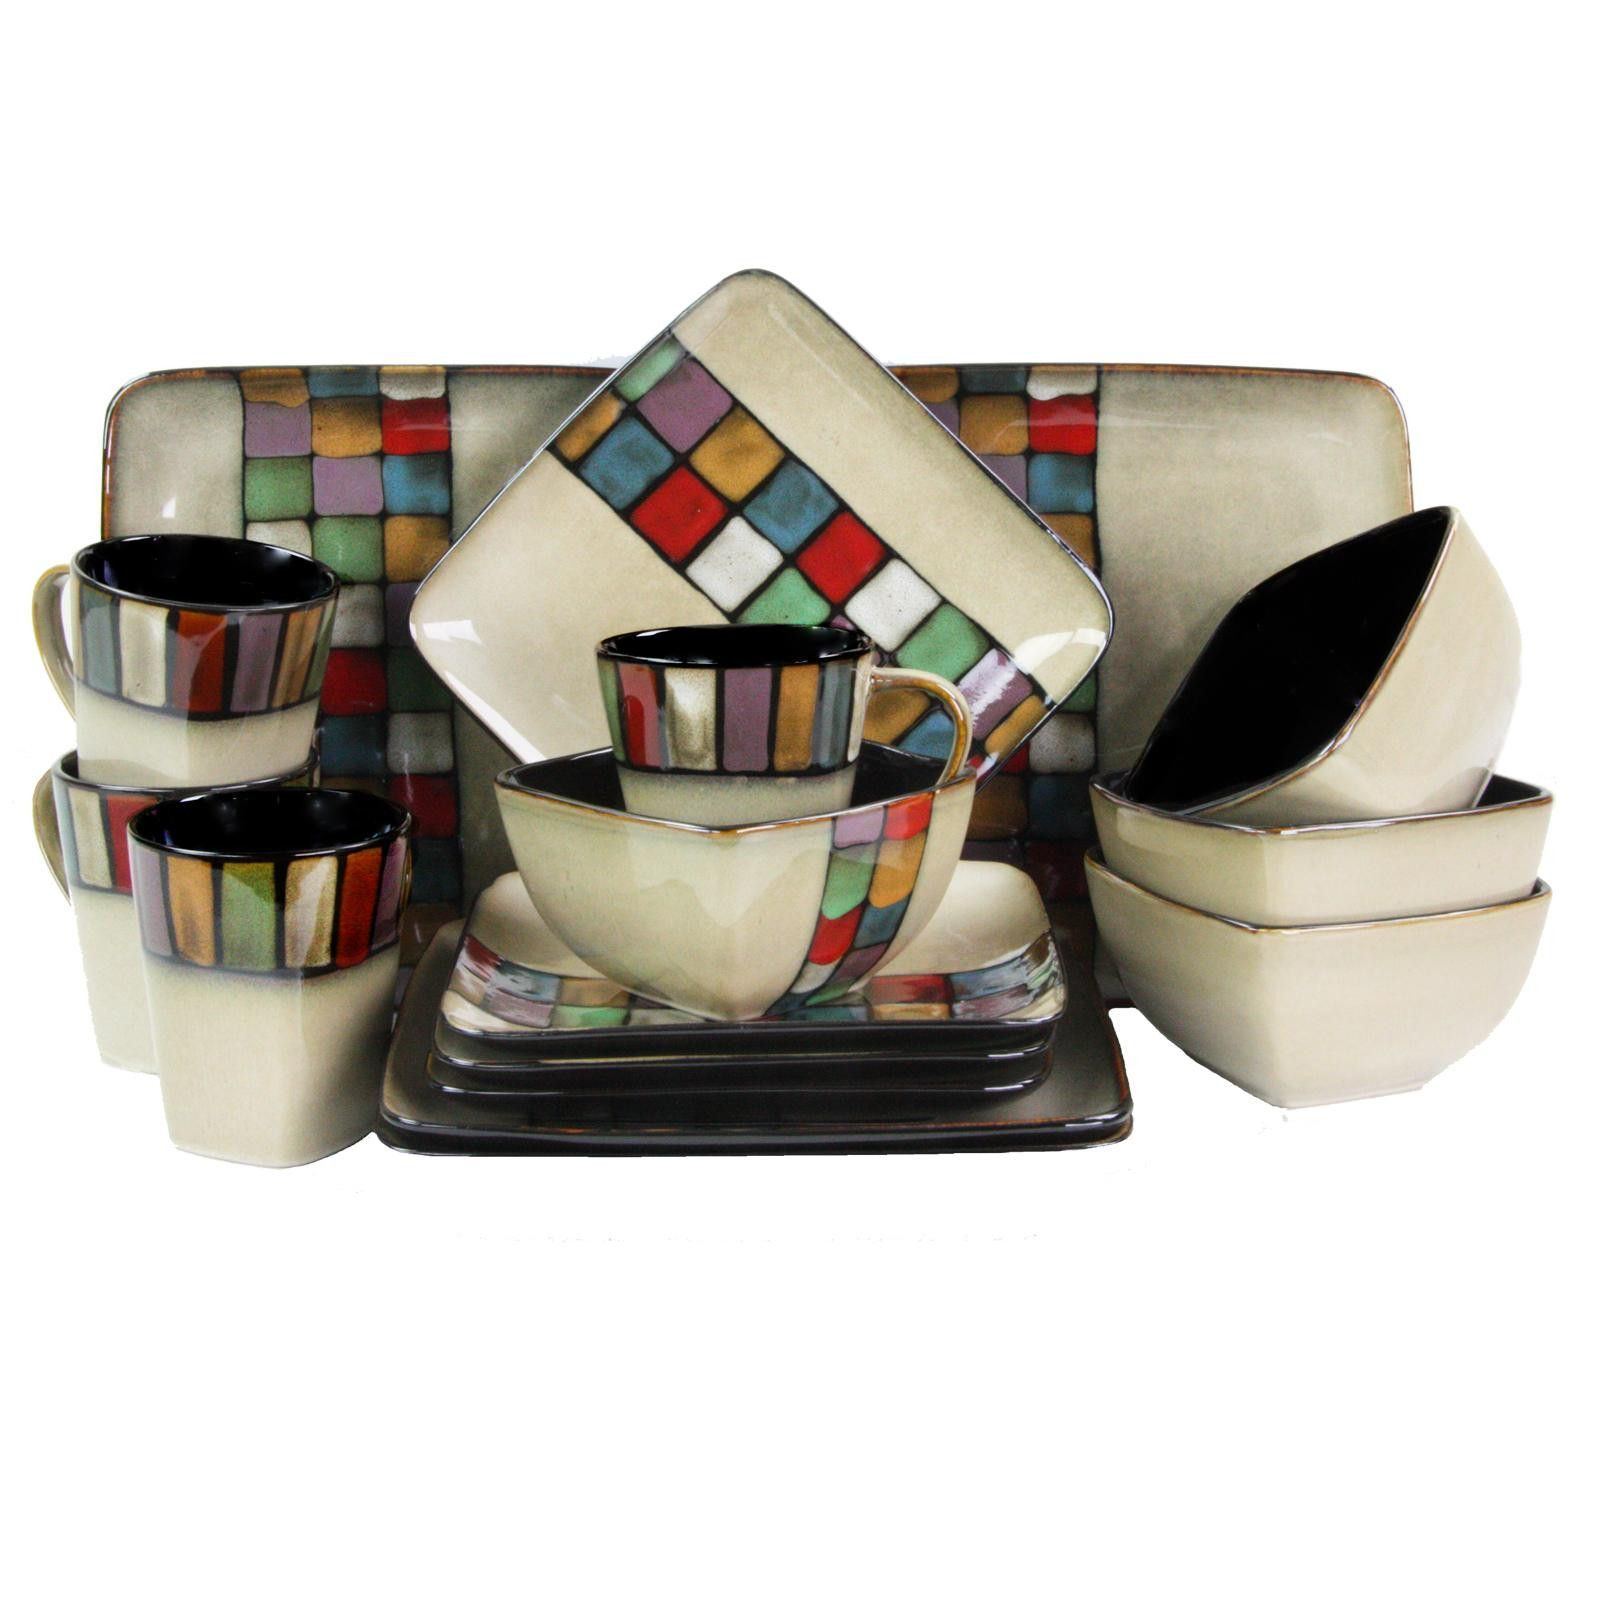 Elama Color Melange 16 Piece Stoneware Dinnerware Set with Complete Service for 4  sc 1 st  Pinterest & Elama Color Melange 16 Piece Stoneware Dinnerware Set with Complete ...